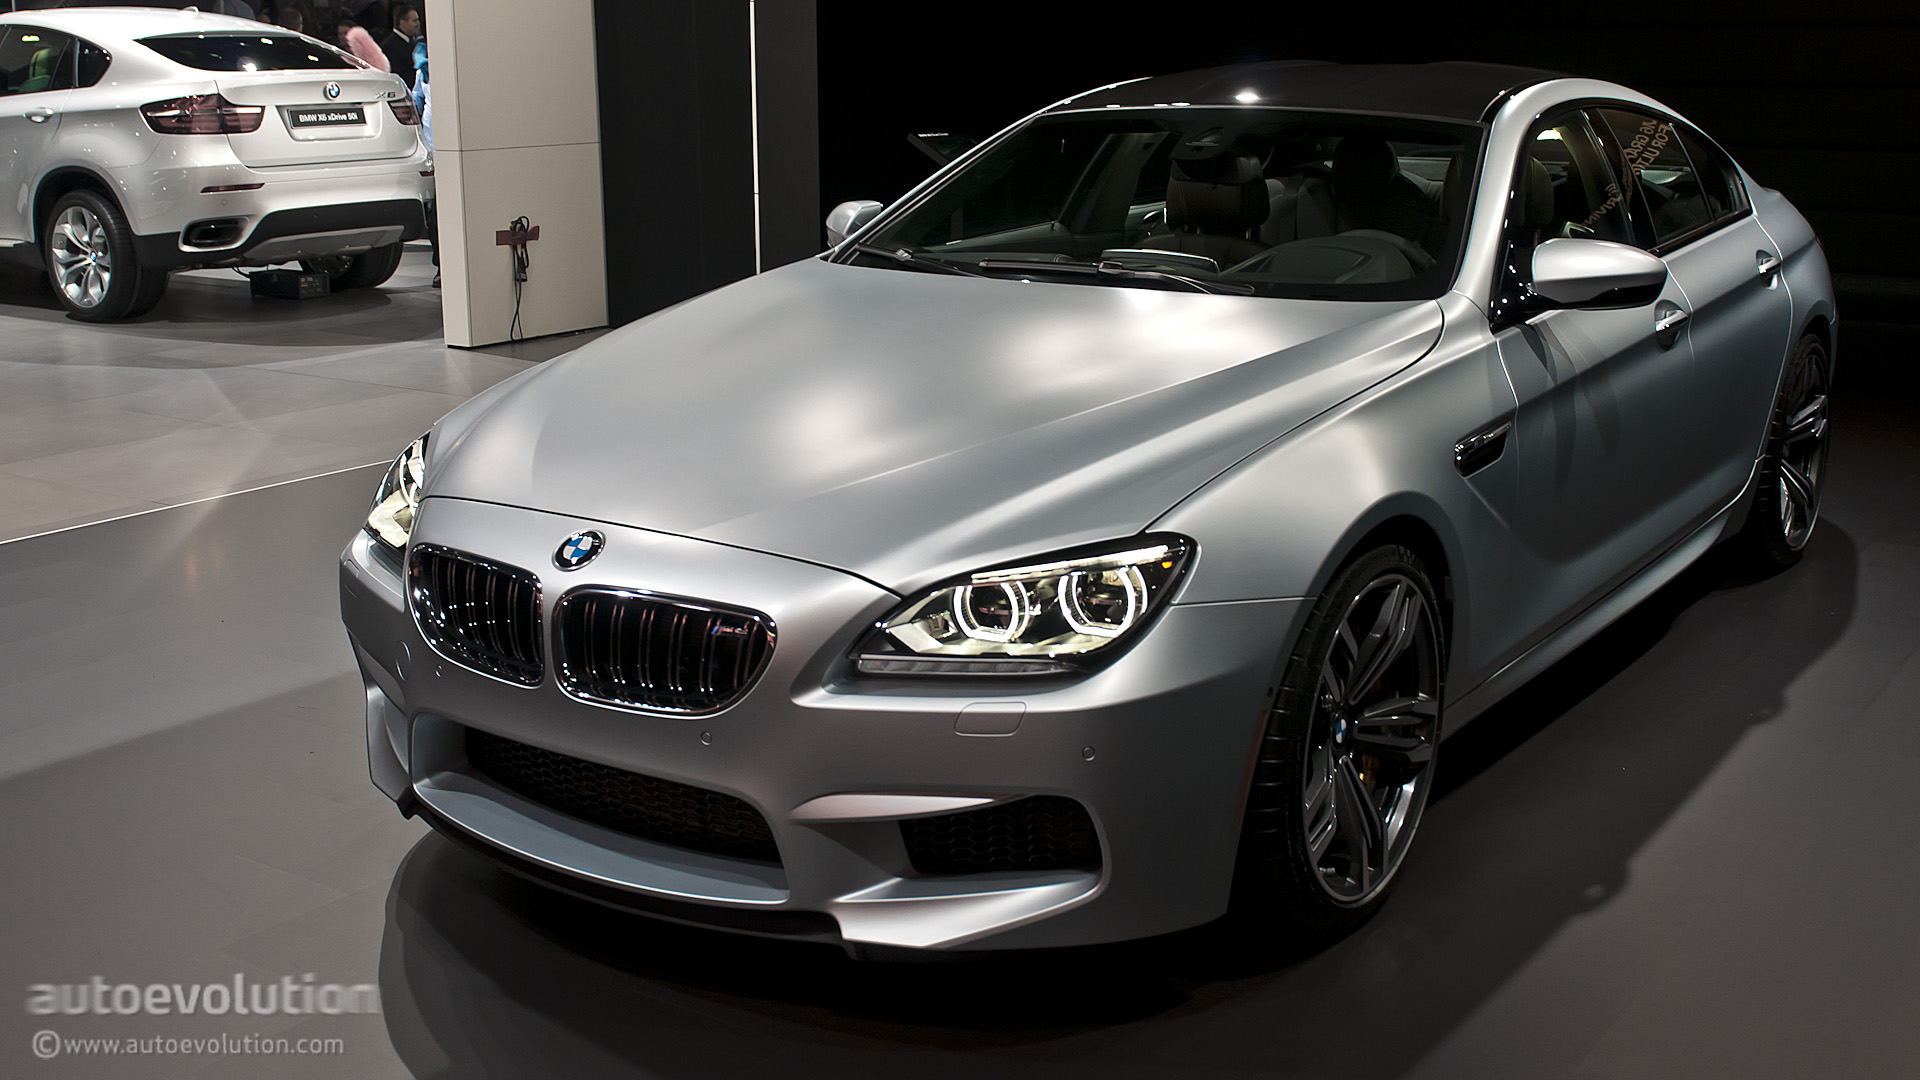 2013 Naias Bmw M6 Gran Coupe Live Photos Autoevolution